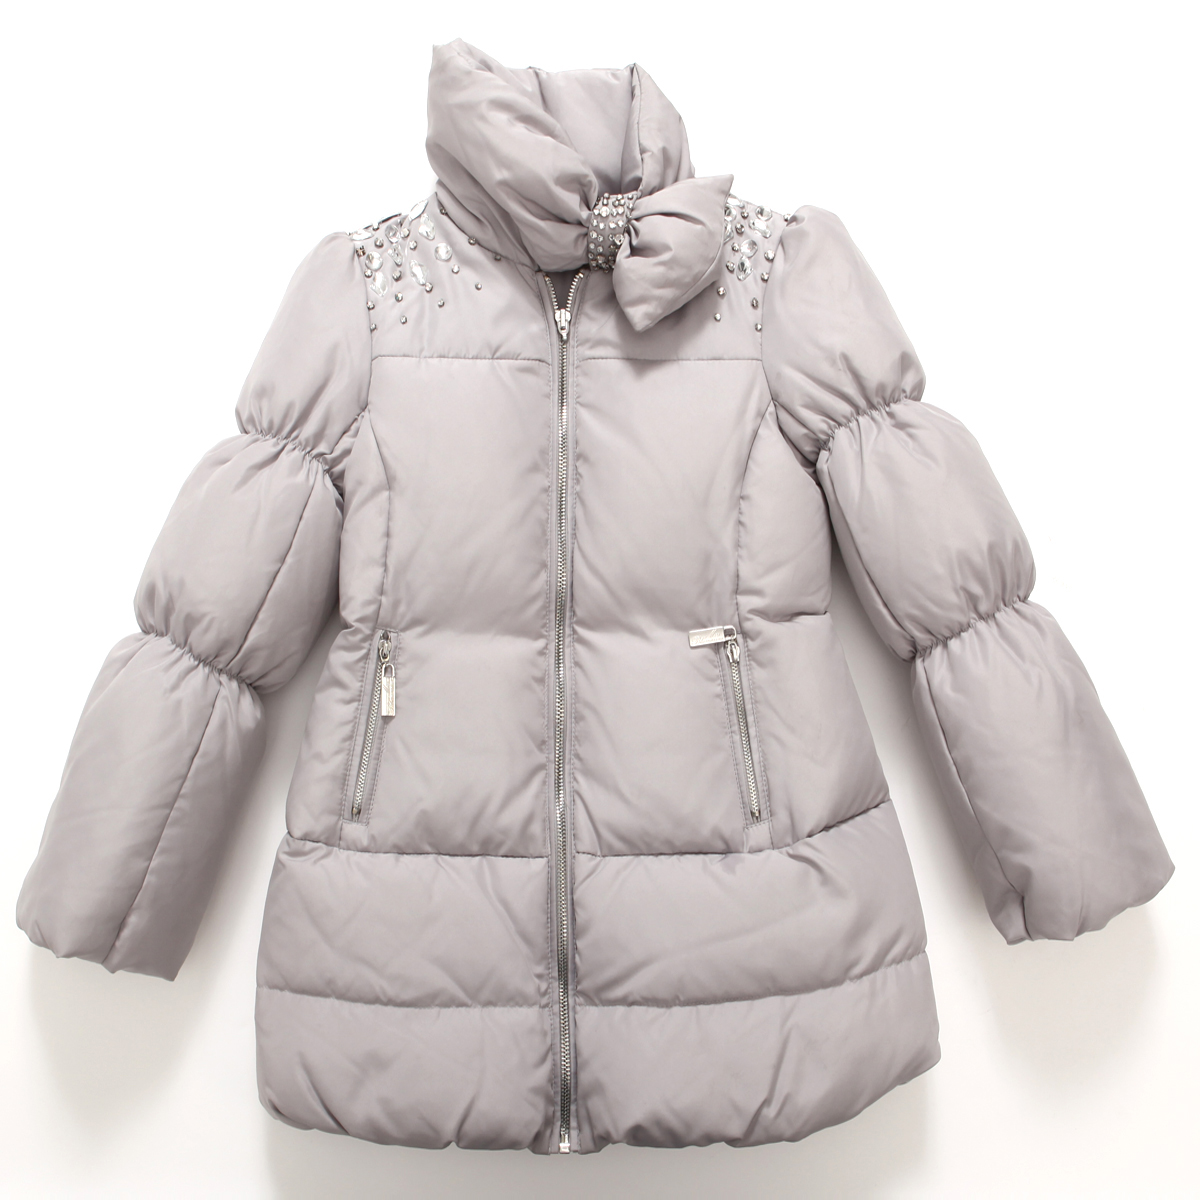 Richie House Girls' Glamorous Bejeweled Padded Coat RH0729